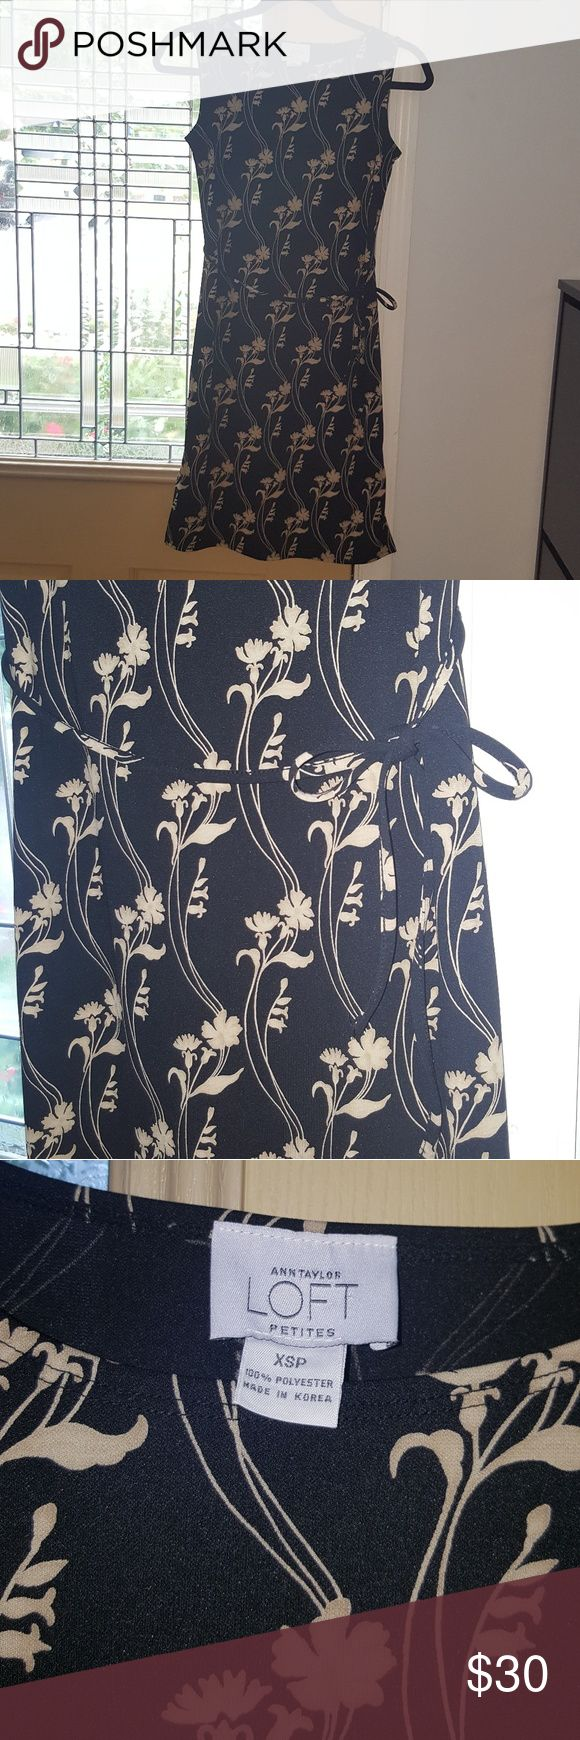 "Ann Taylor LOFT Petite Black Dress Black and Tan floral dress with a wait belt and 4"" slits on each side of dress hem. Sophisticated. Business causal. LOFT Dresses Strapless"